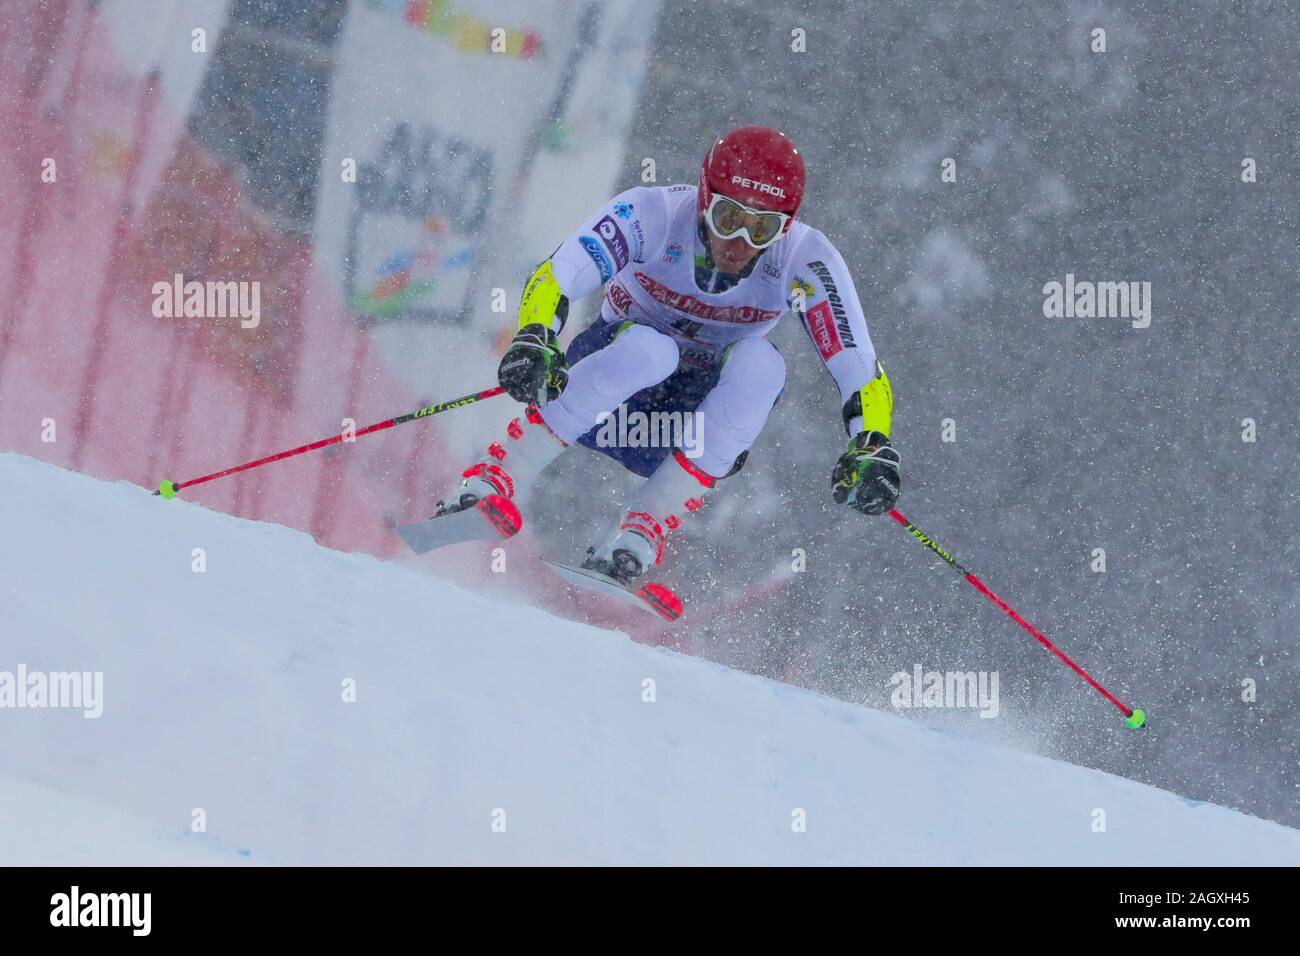 Alta Badia, Italy. 22nd Dec, 2019. kranjec zan (slo) 3rd classifiedduring FIS SKI WORLD CUP 2019 - Giant Slalom Men, Ski in Alta Badia, Italy, December 22 2019 - LPS/Sergio Bisi Credit: Sergio Bisi/LPS/ZUMA Wire/Alamy Live News Stock Photo